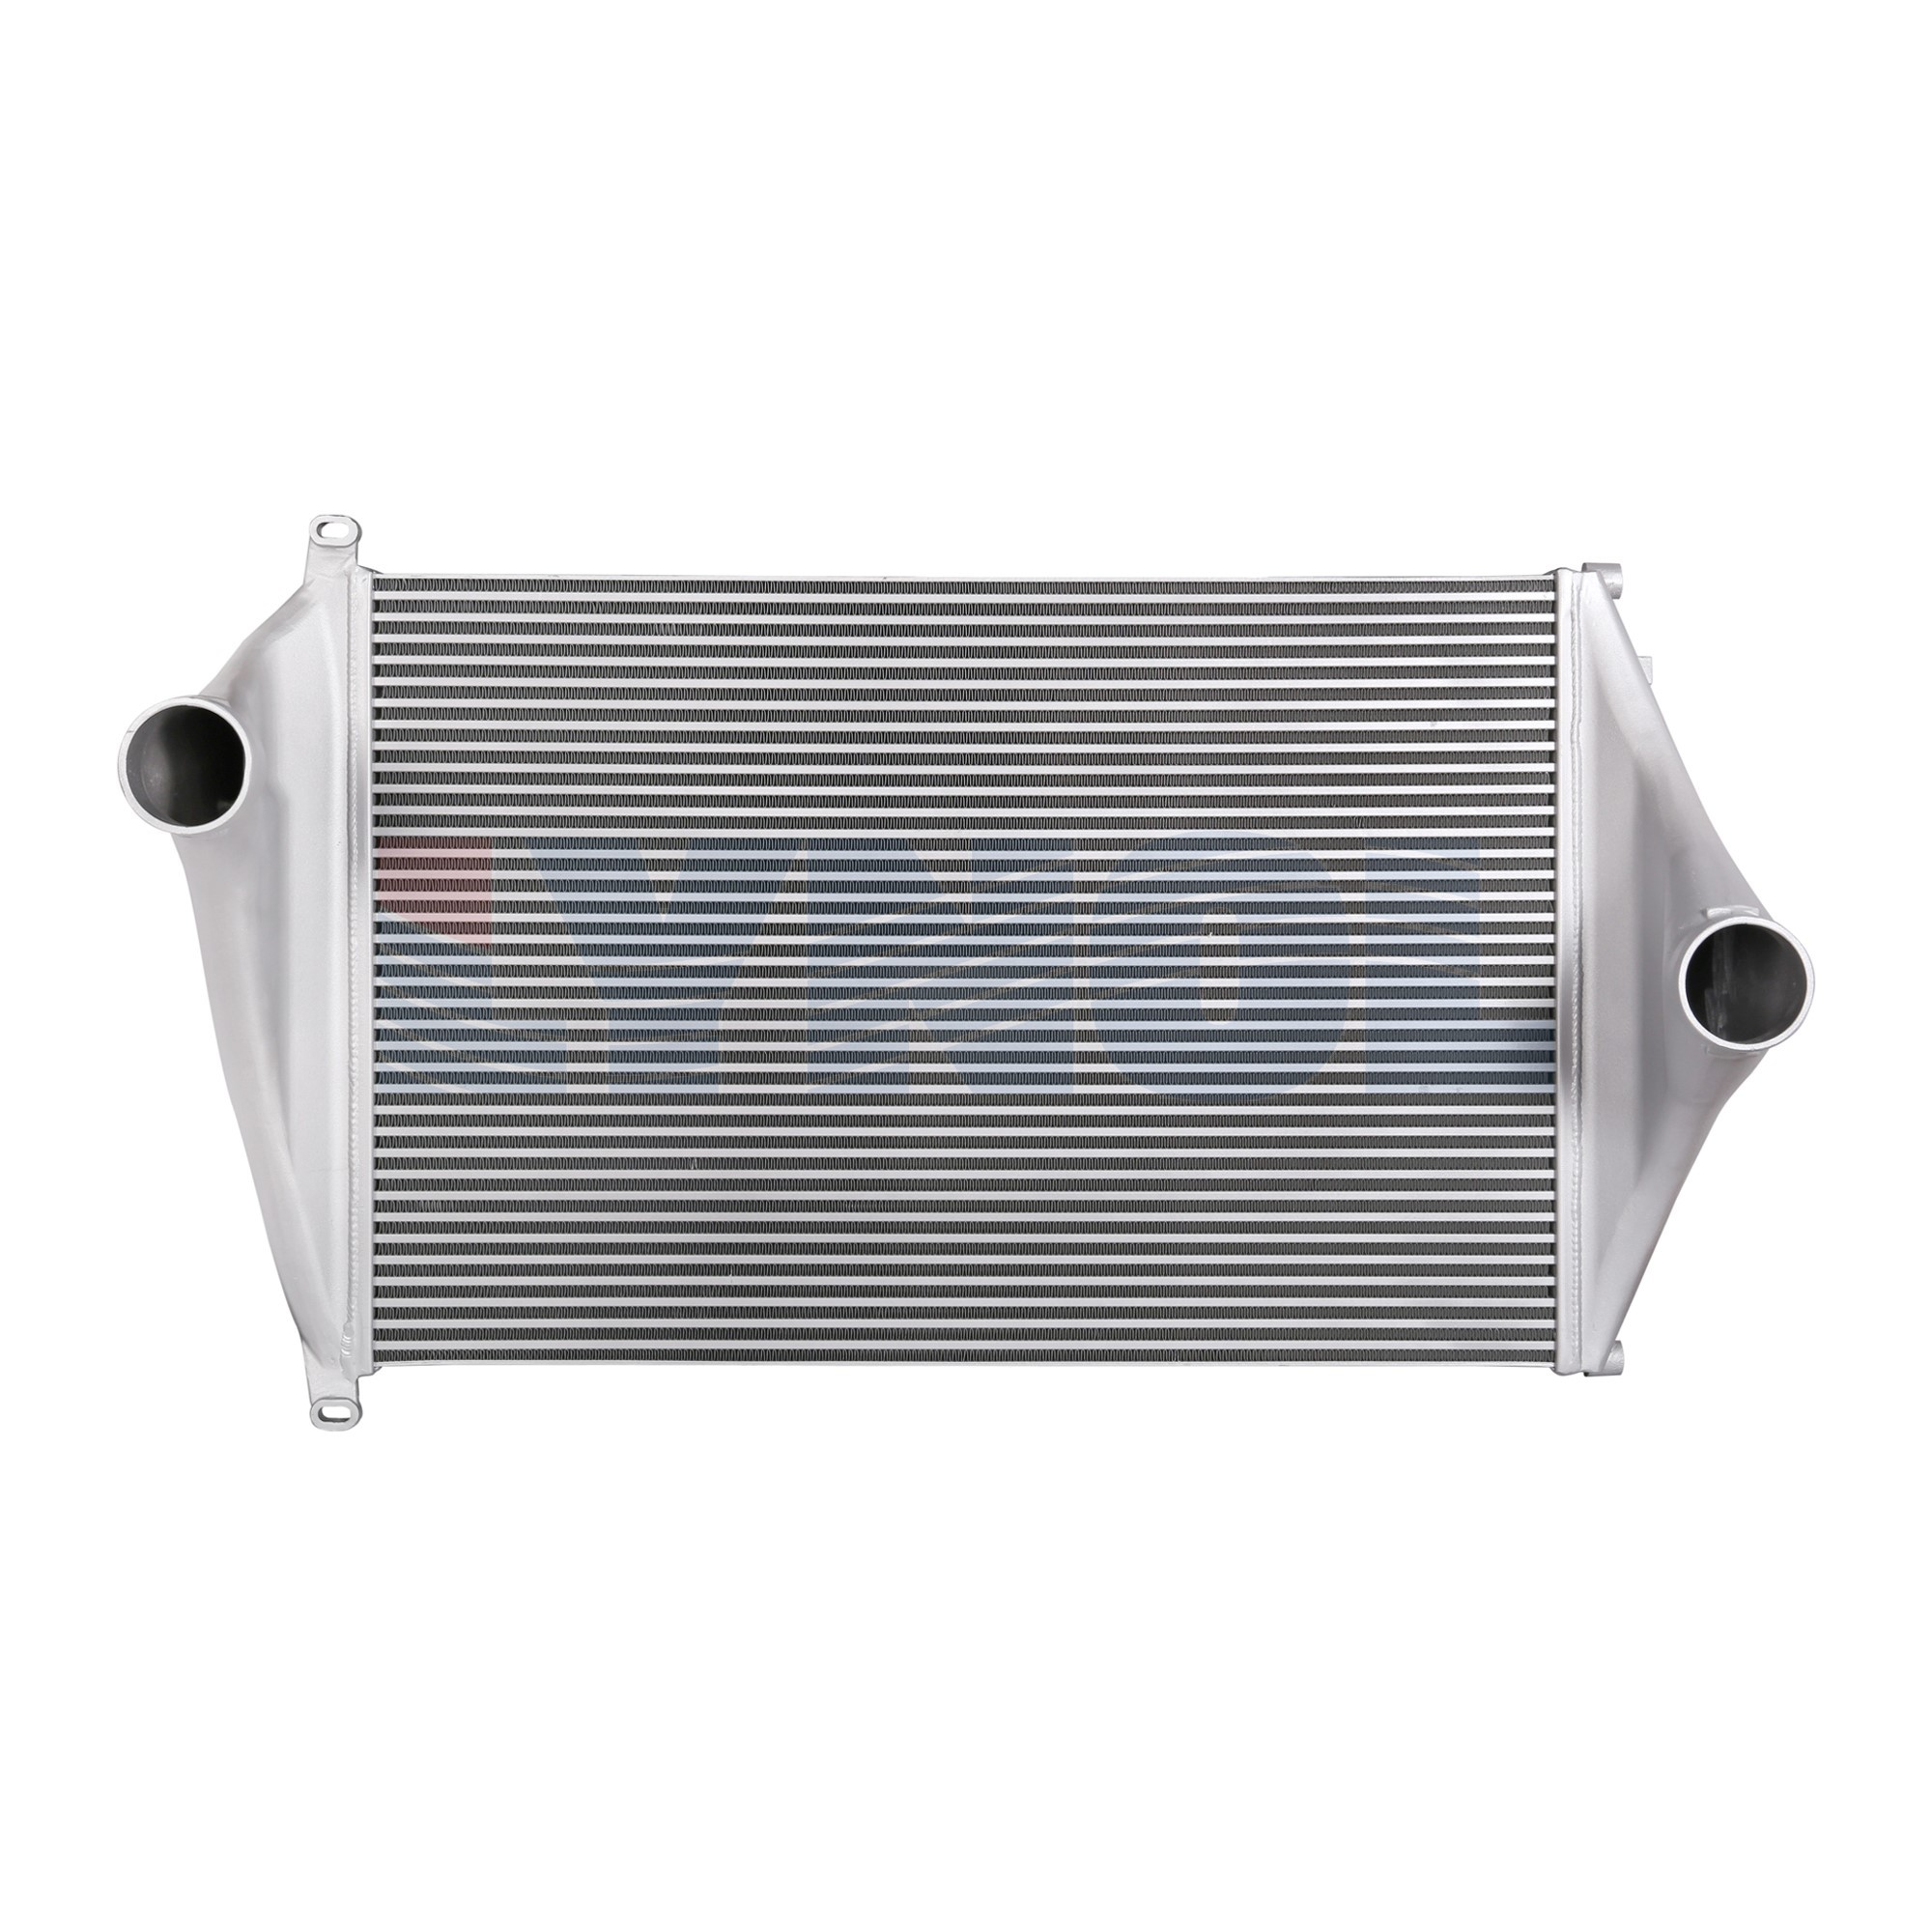 2400-015 - Freightliner Charge Air Cooler